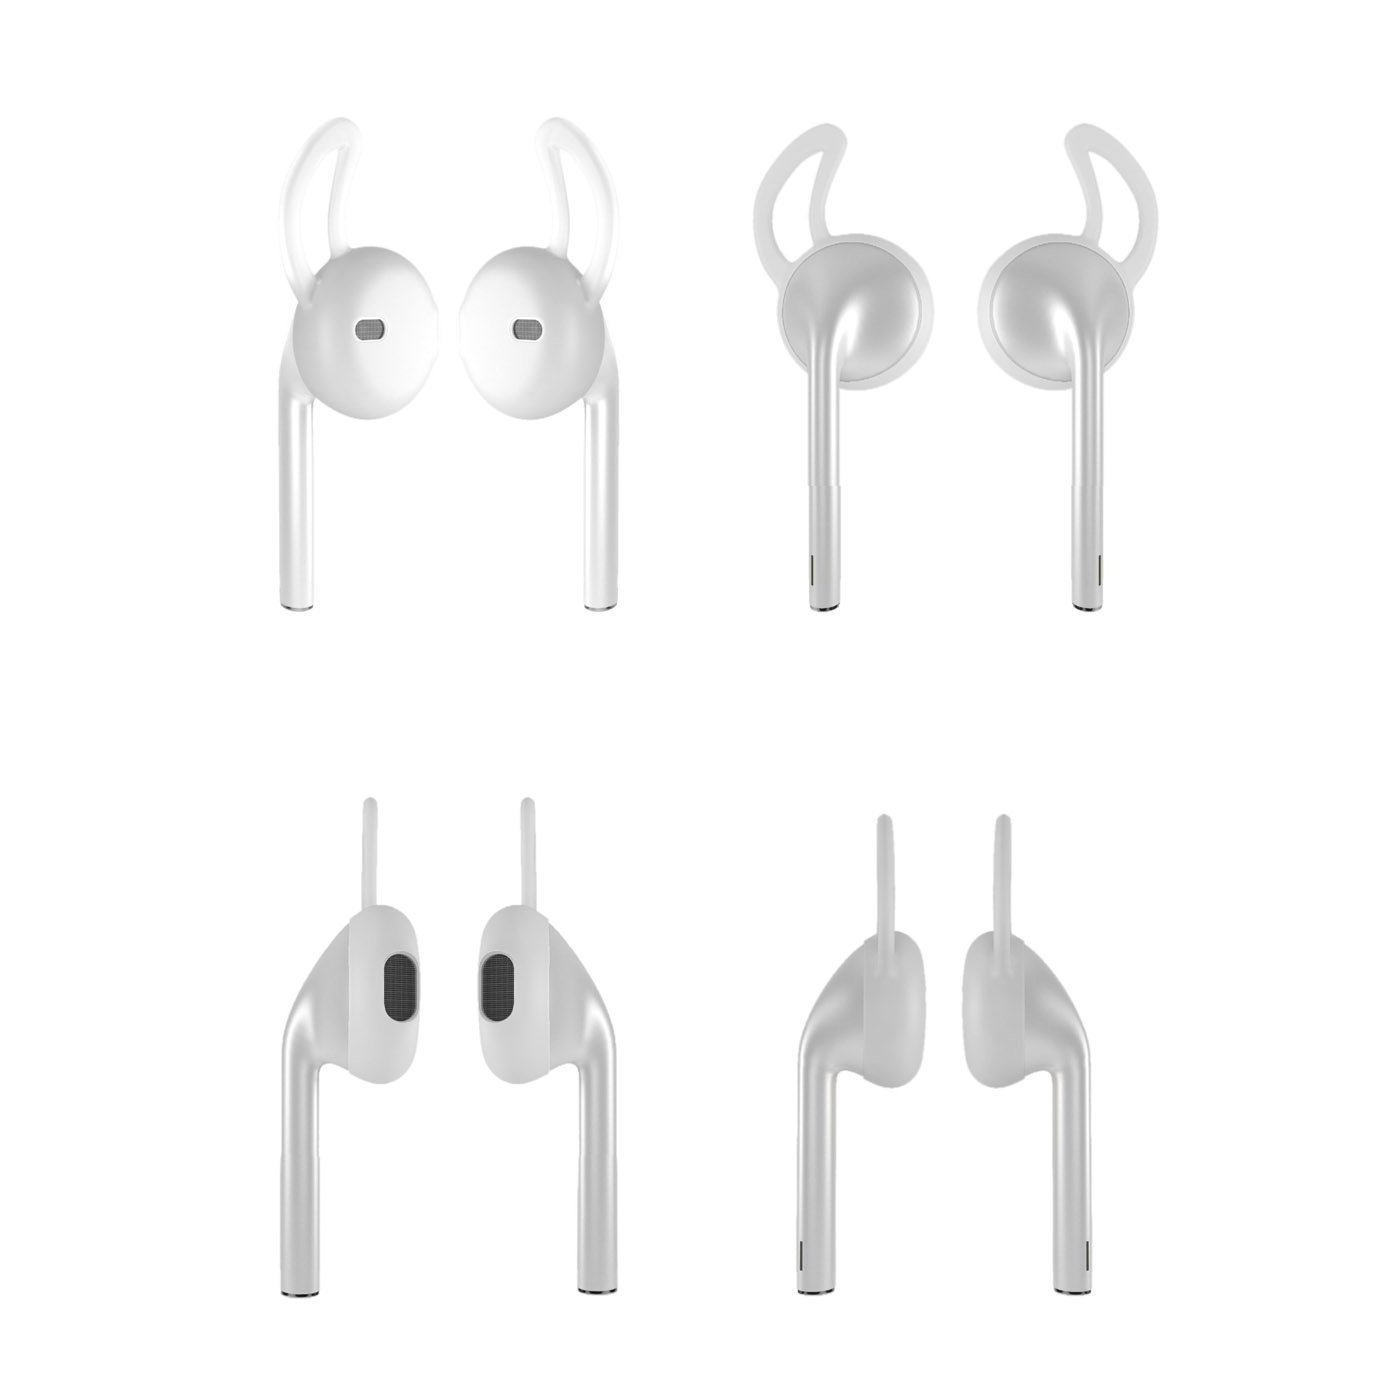 Silicone Earpod Cover Airpods Cover Transparent Soft Anti-Slip Earphone Cover for iPhone 7//7Plus//6//6Plus//5//5SE 2 Pair